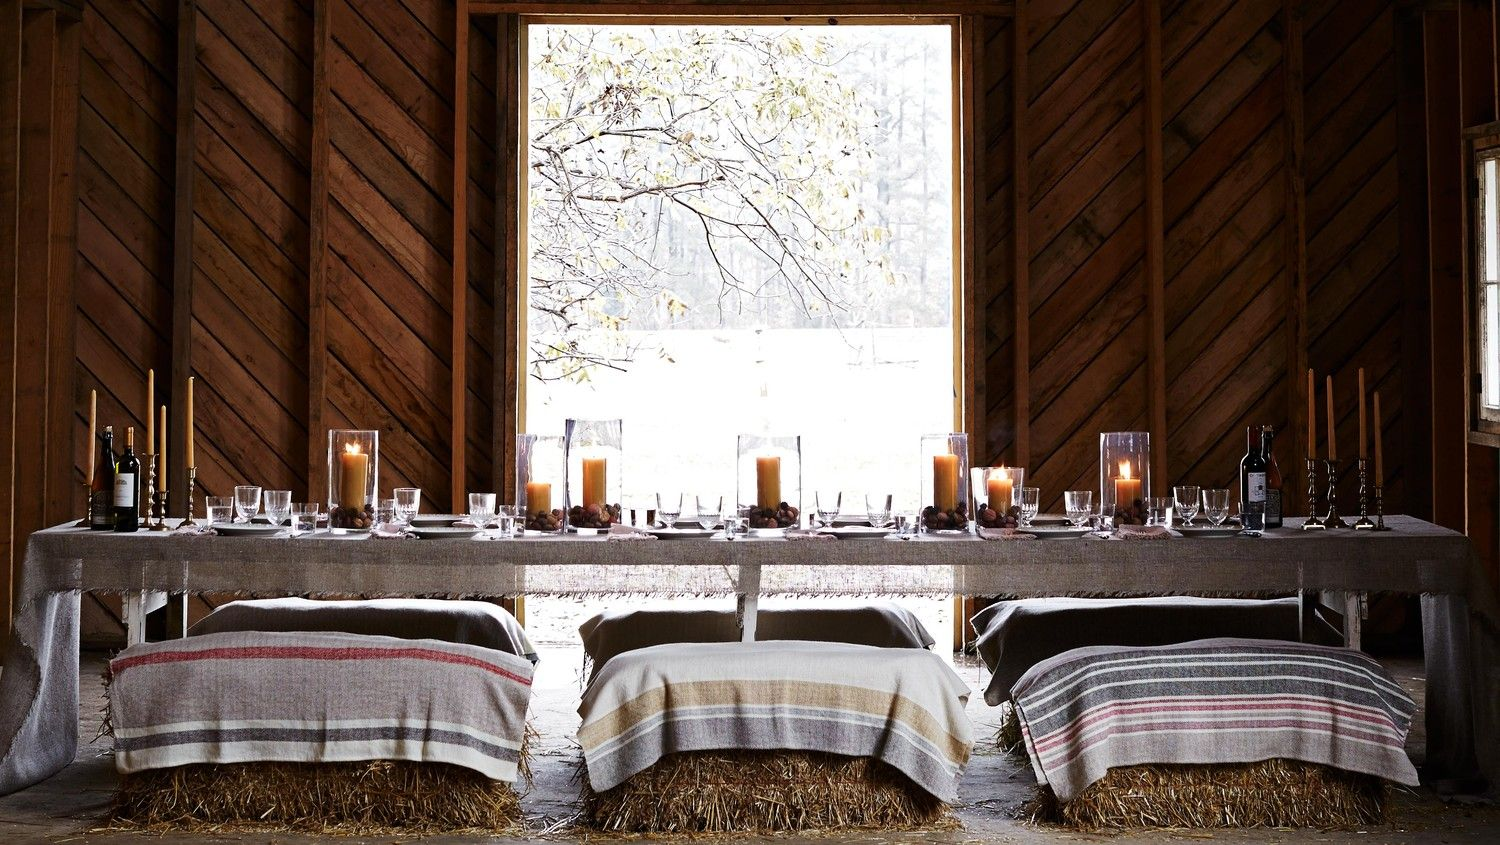 17 Thanksgiving Table Settings Sure to Wow Your Guests #thanksgivingtablesettings